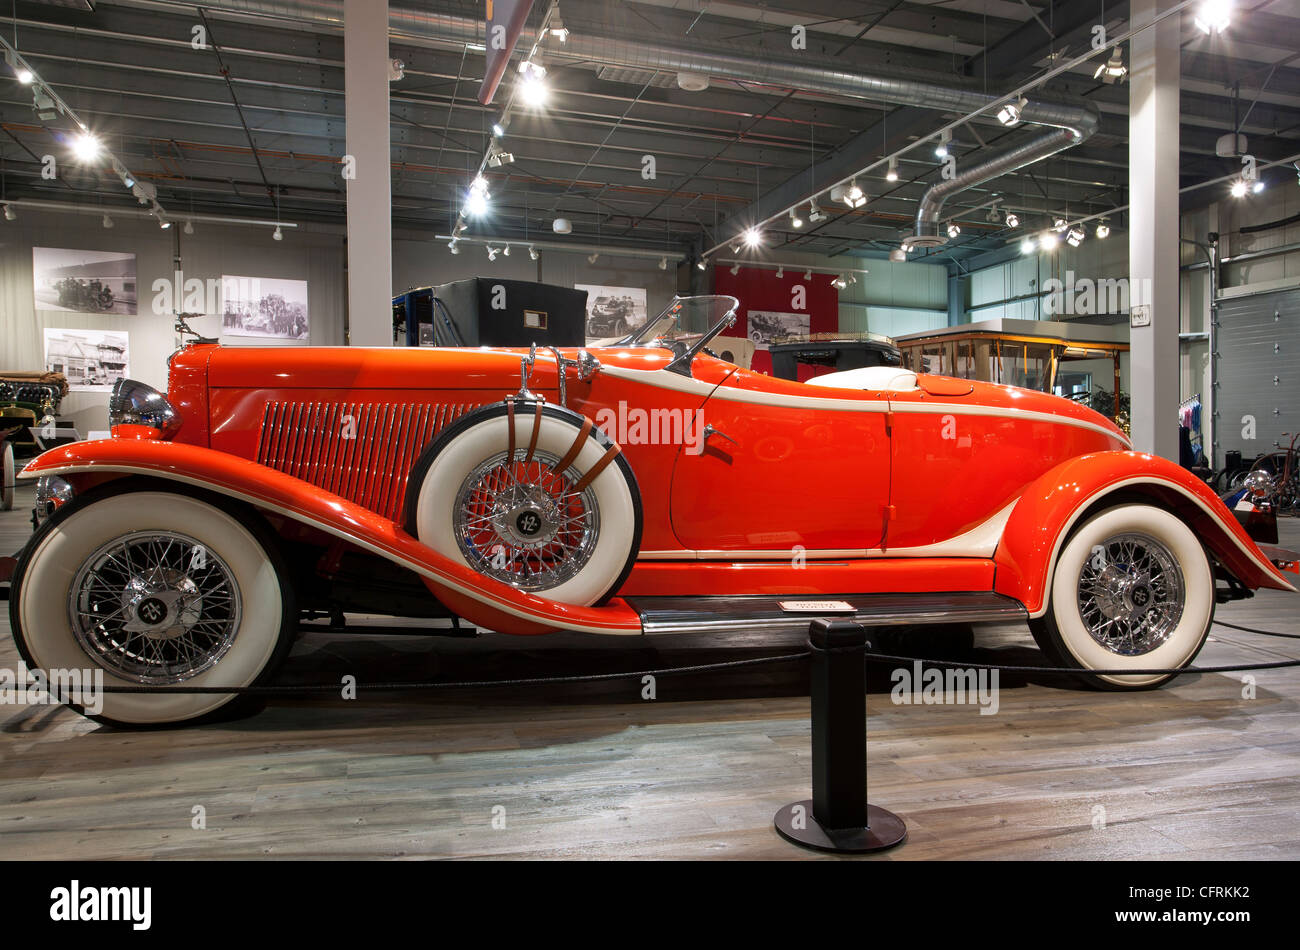 1933 Auburn model 12-161A custom boattail speedster. Fountainhead Antique Auto Museum. Fairbanks. Alaska. USA - Stock Image